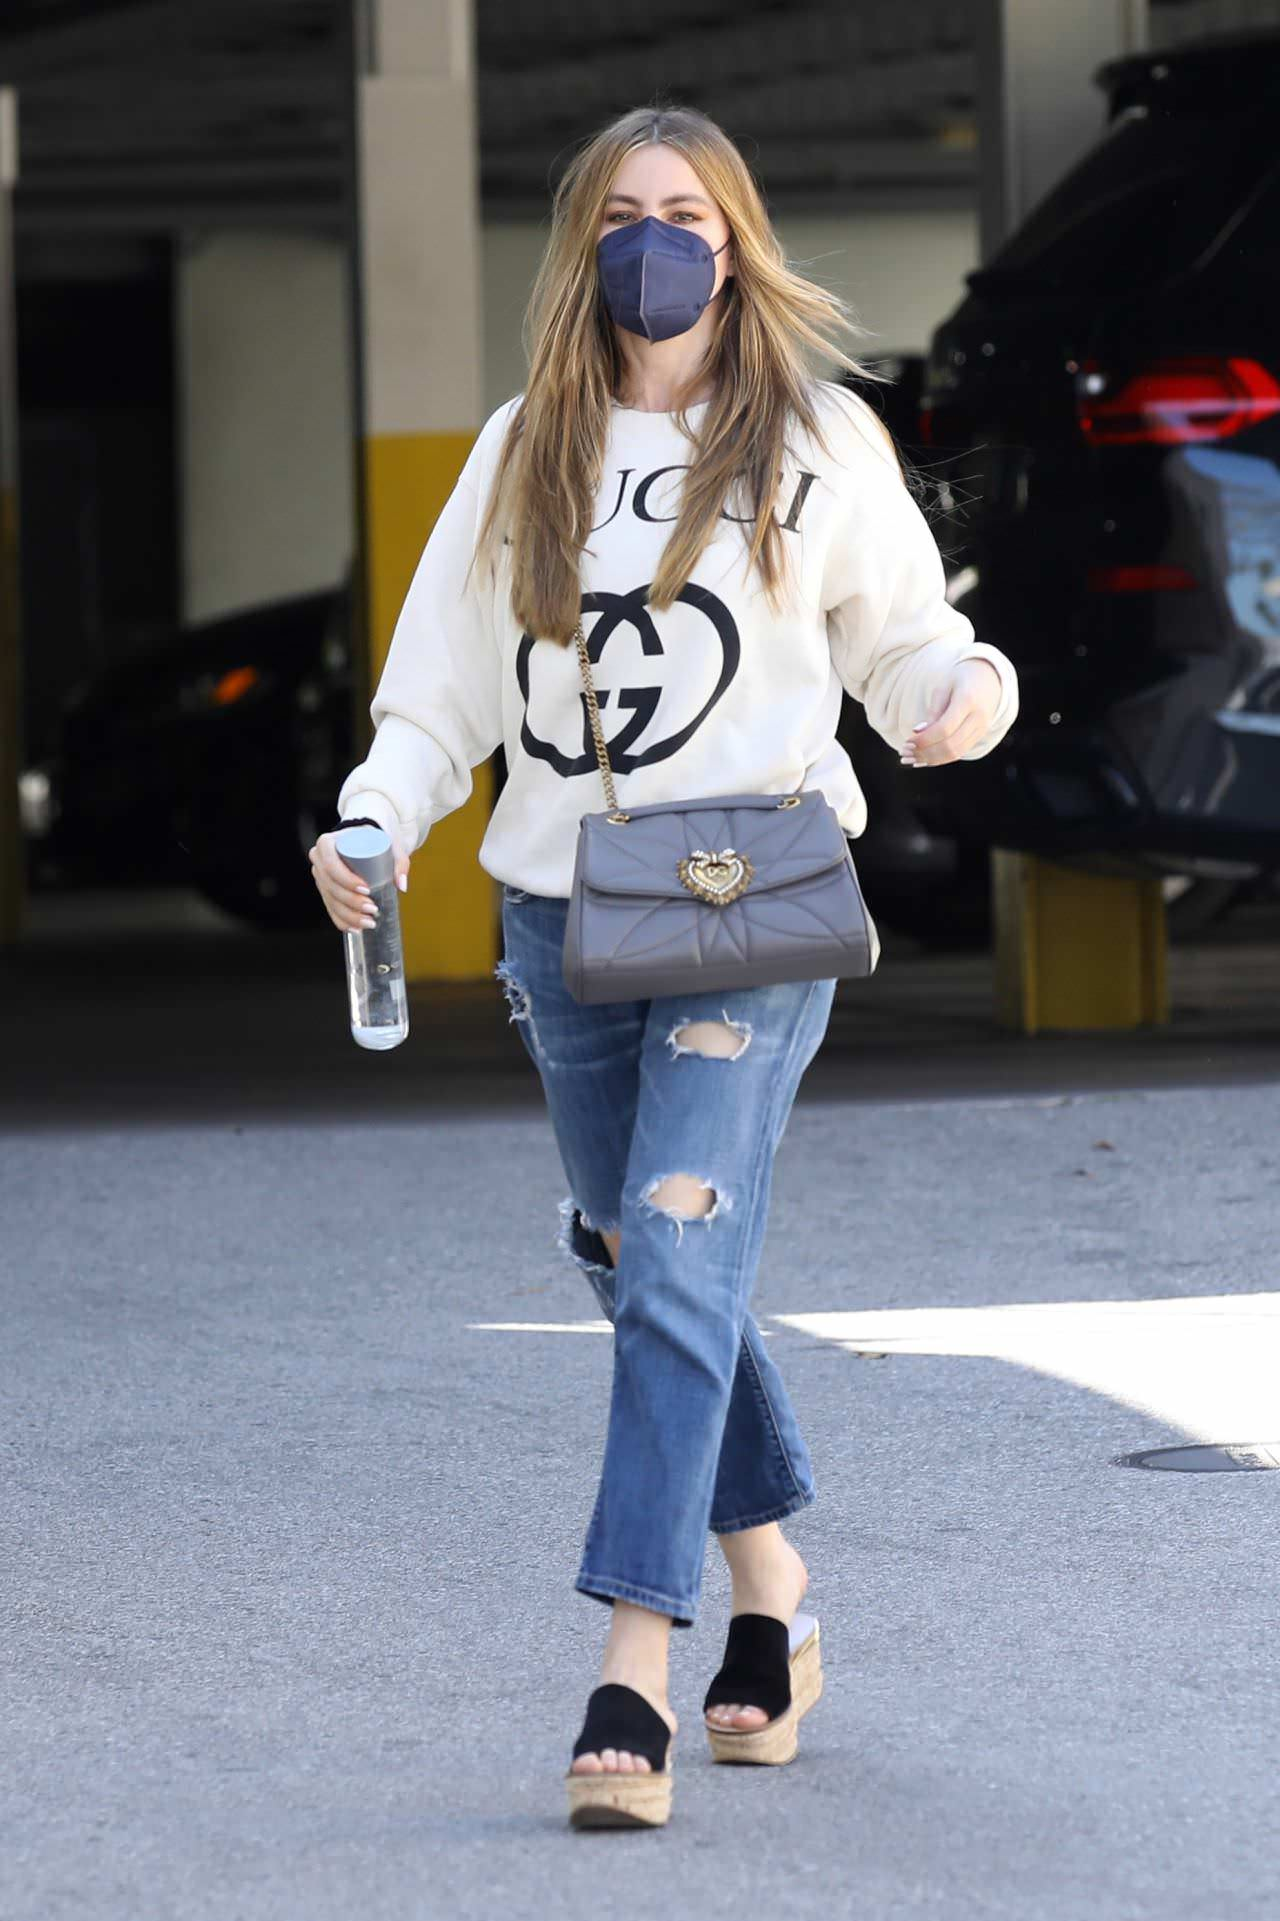 Sofia Vergara Running Errands in Gucci Sweater and Blue Jeans